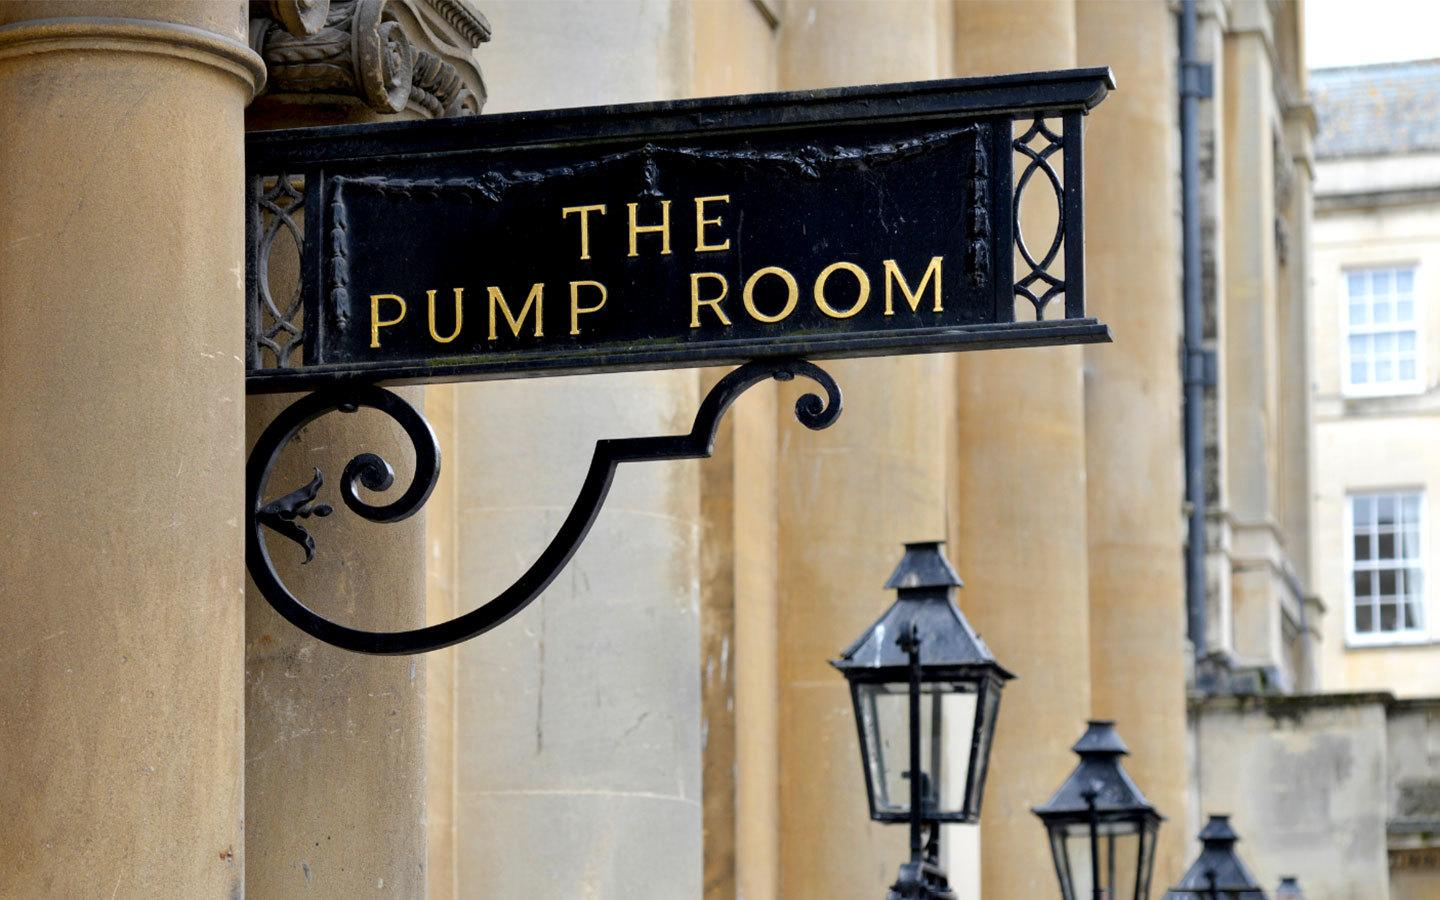 Entrance to the Pump Room in Bath